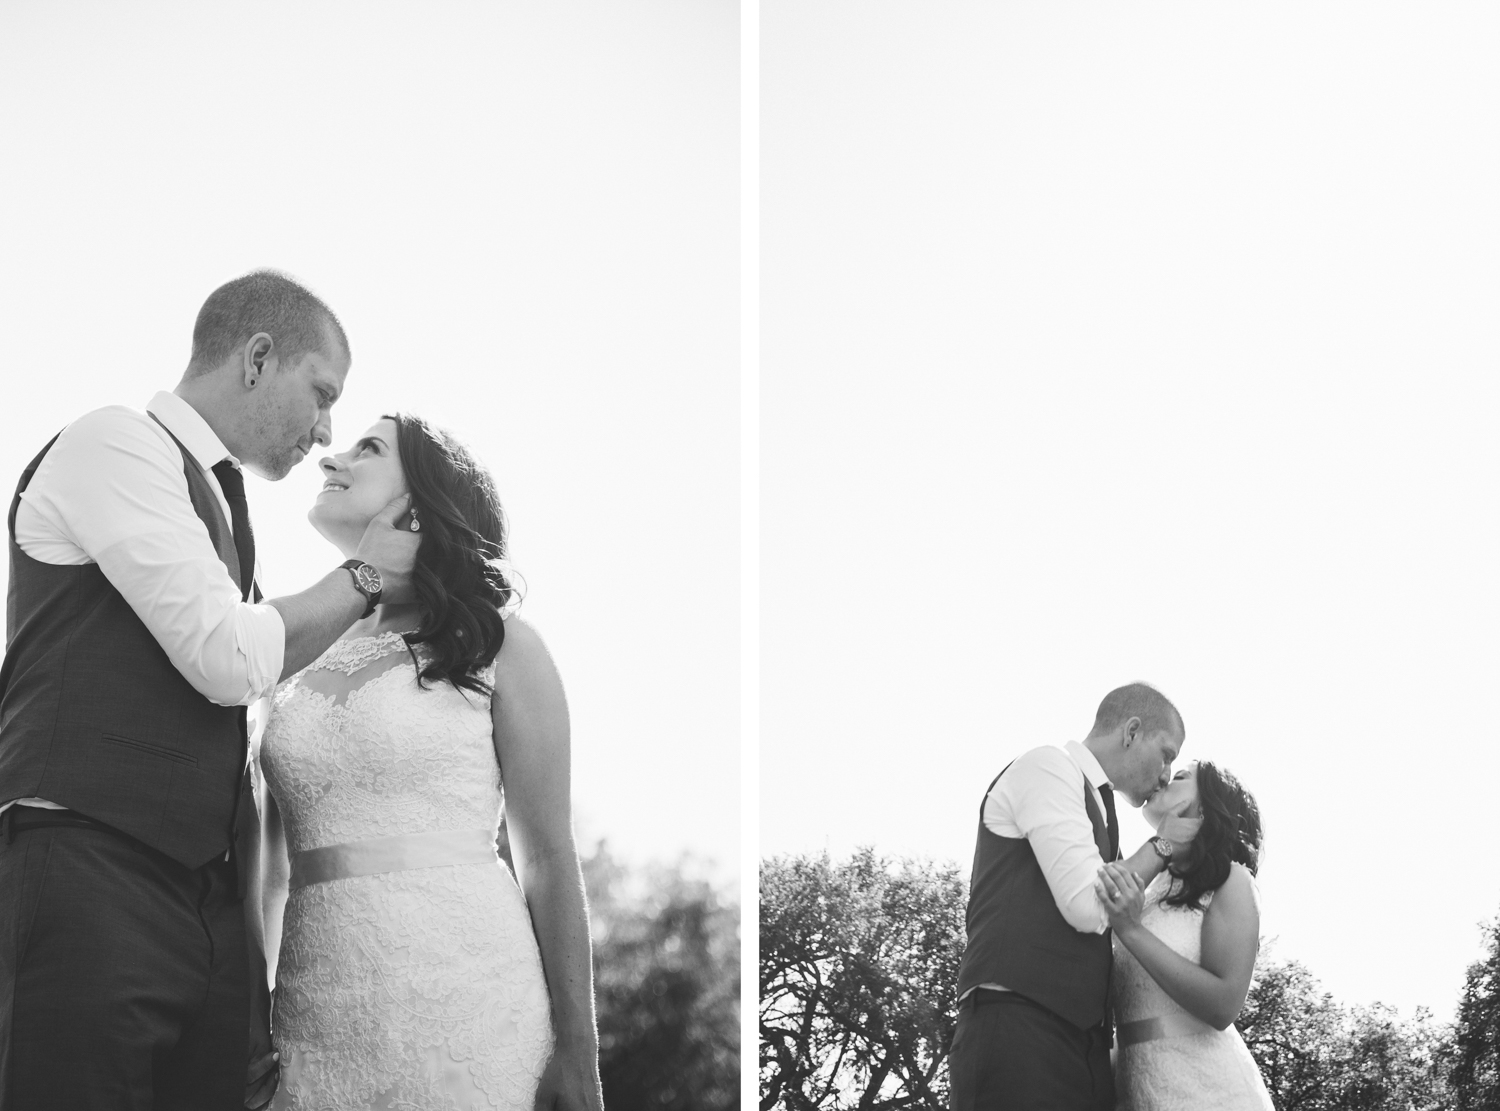 lethbridge-wedding-photography-love-and-be-loved-photographers-ashlin-anne-backyard-wedding-image-picture-photo-368.jpg